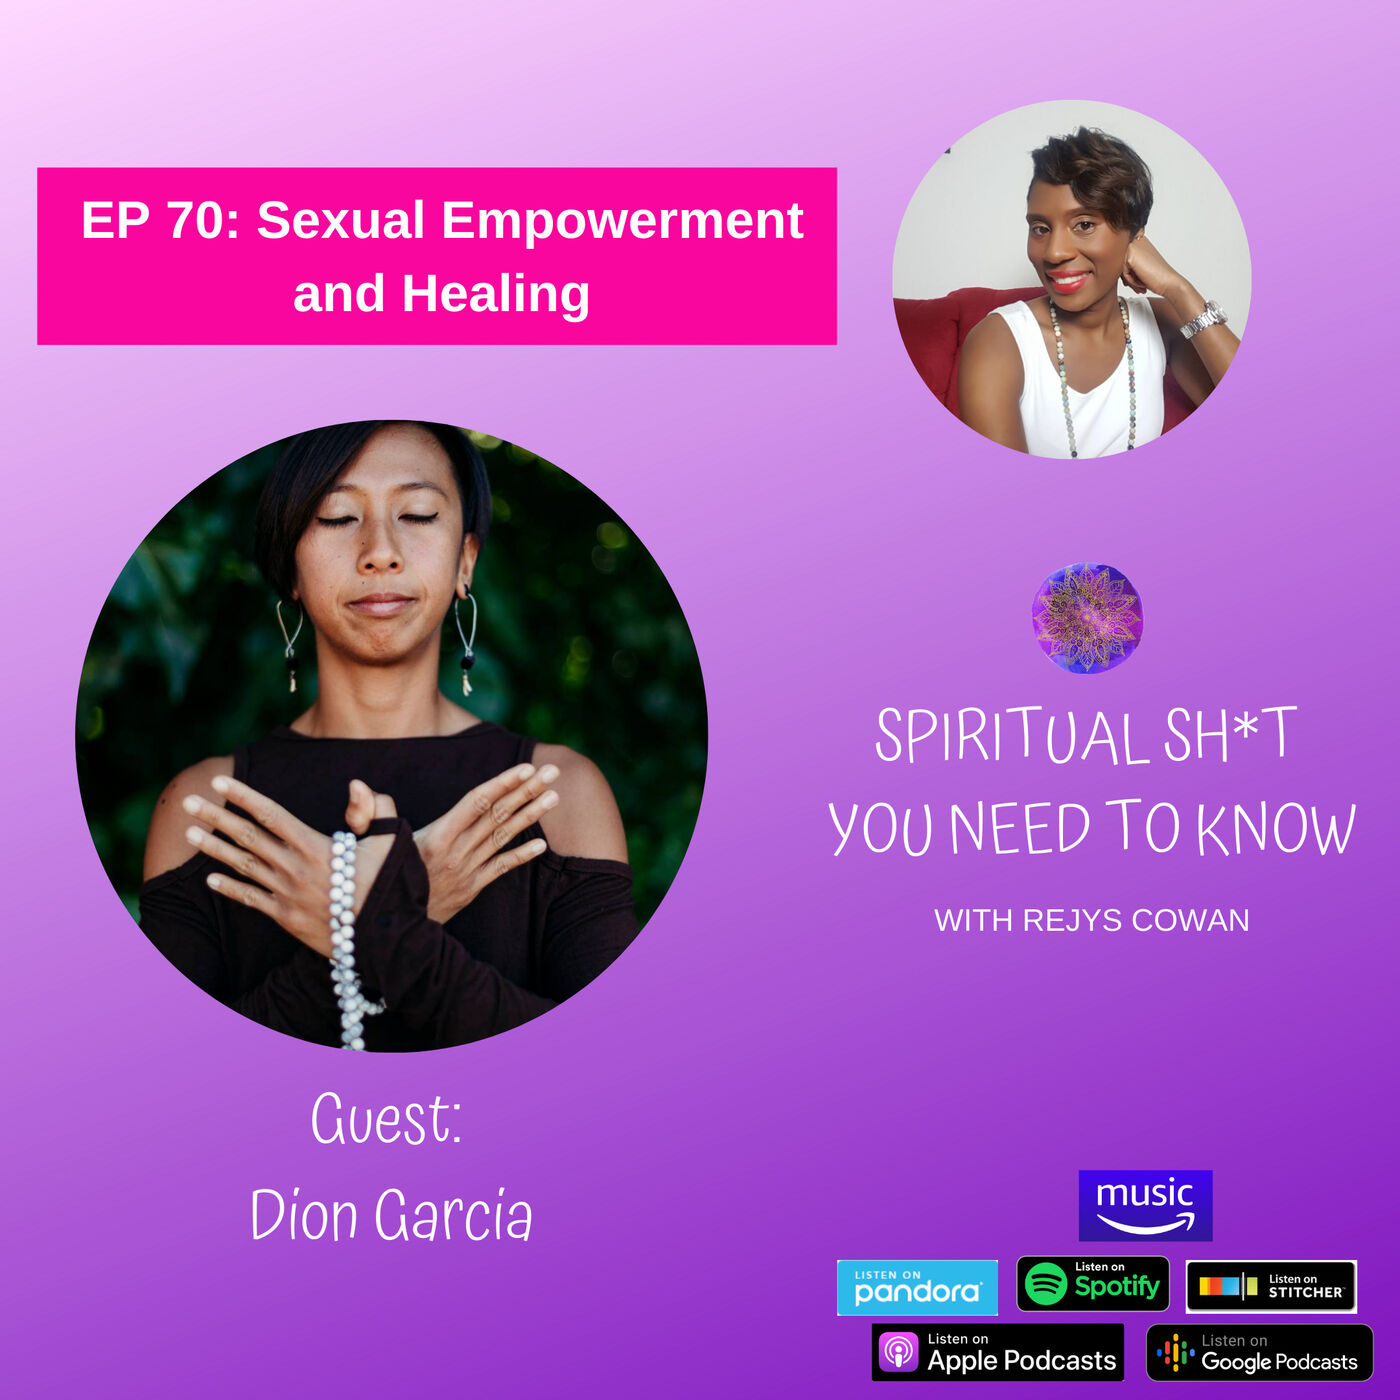 070: Sexual Empowerment and Healing with Dion Garcia